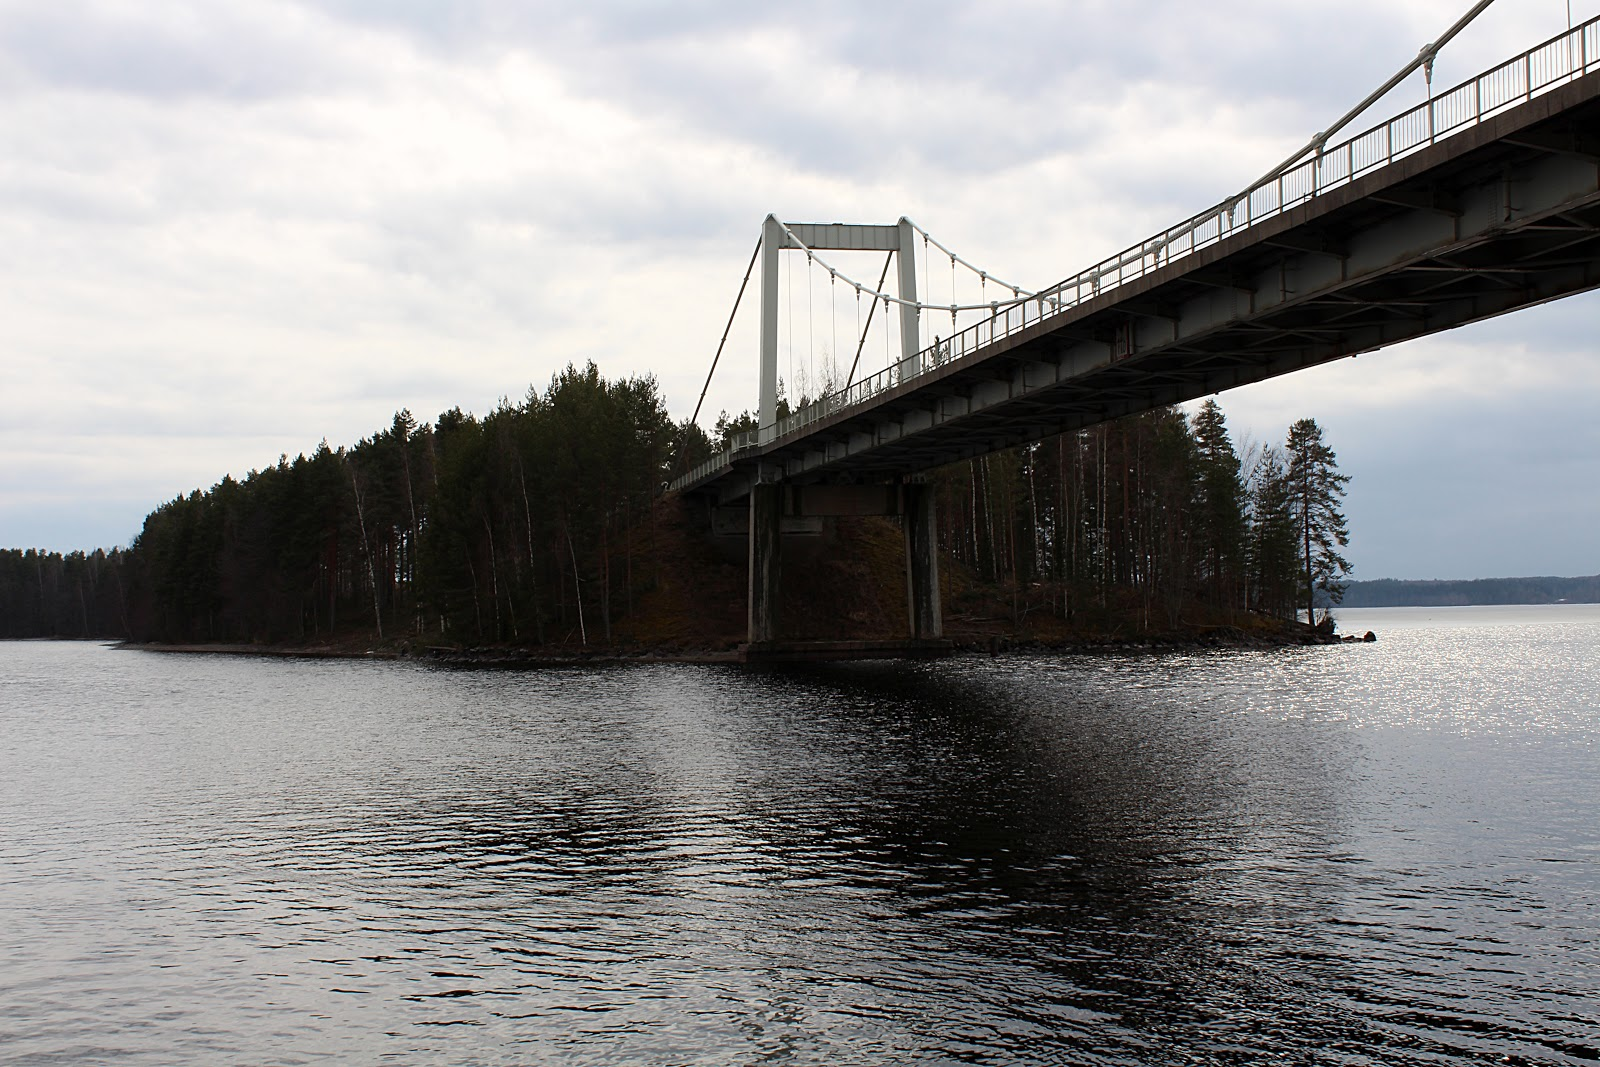 Lake Paijanne, Karisalmi Bridge Lake Paijanne, Karisalmi Bridge, Karisalmi, Lake Paijanne bridge, Finland, Karisalmi bridge Finland, Finnish sights